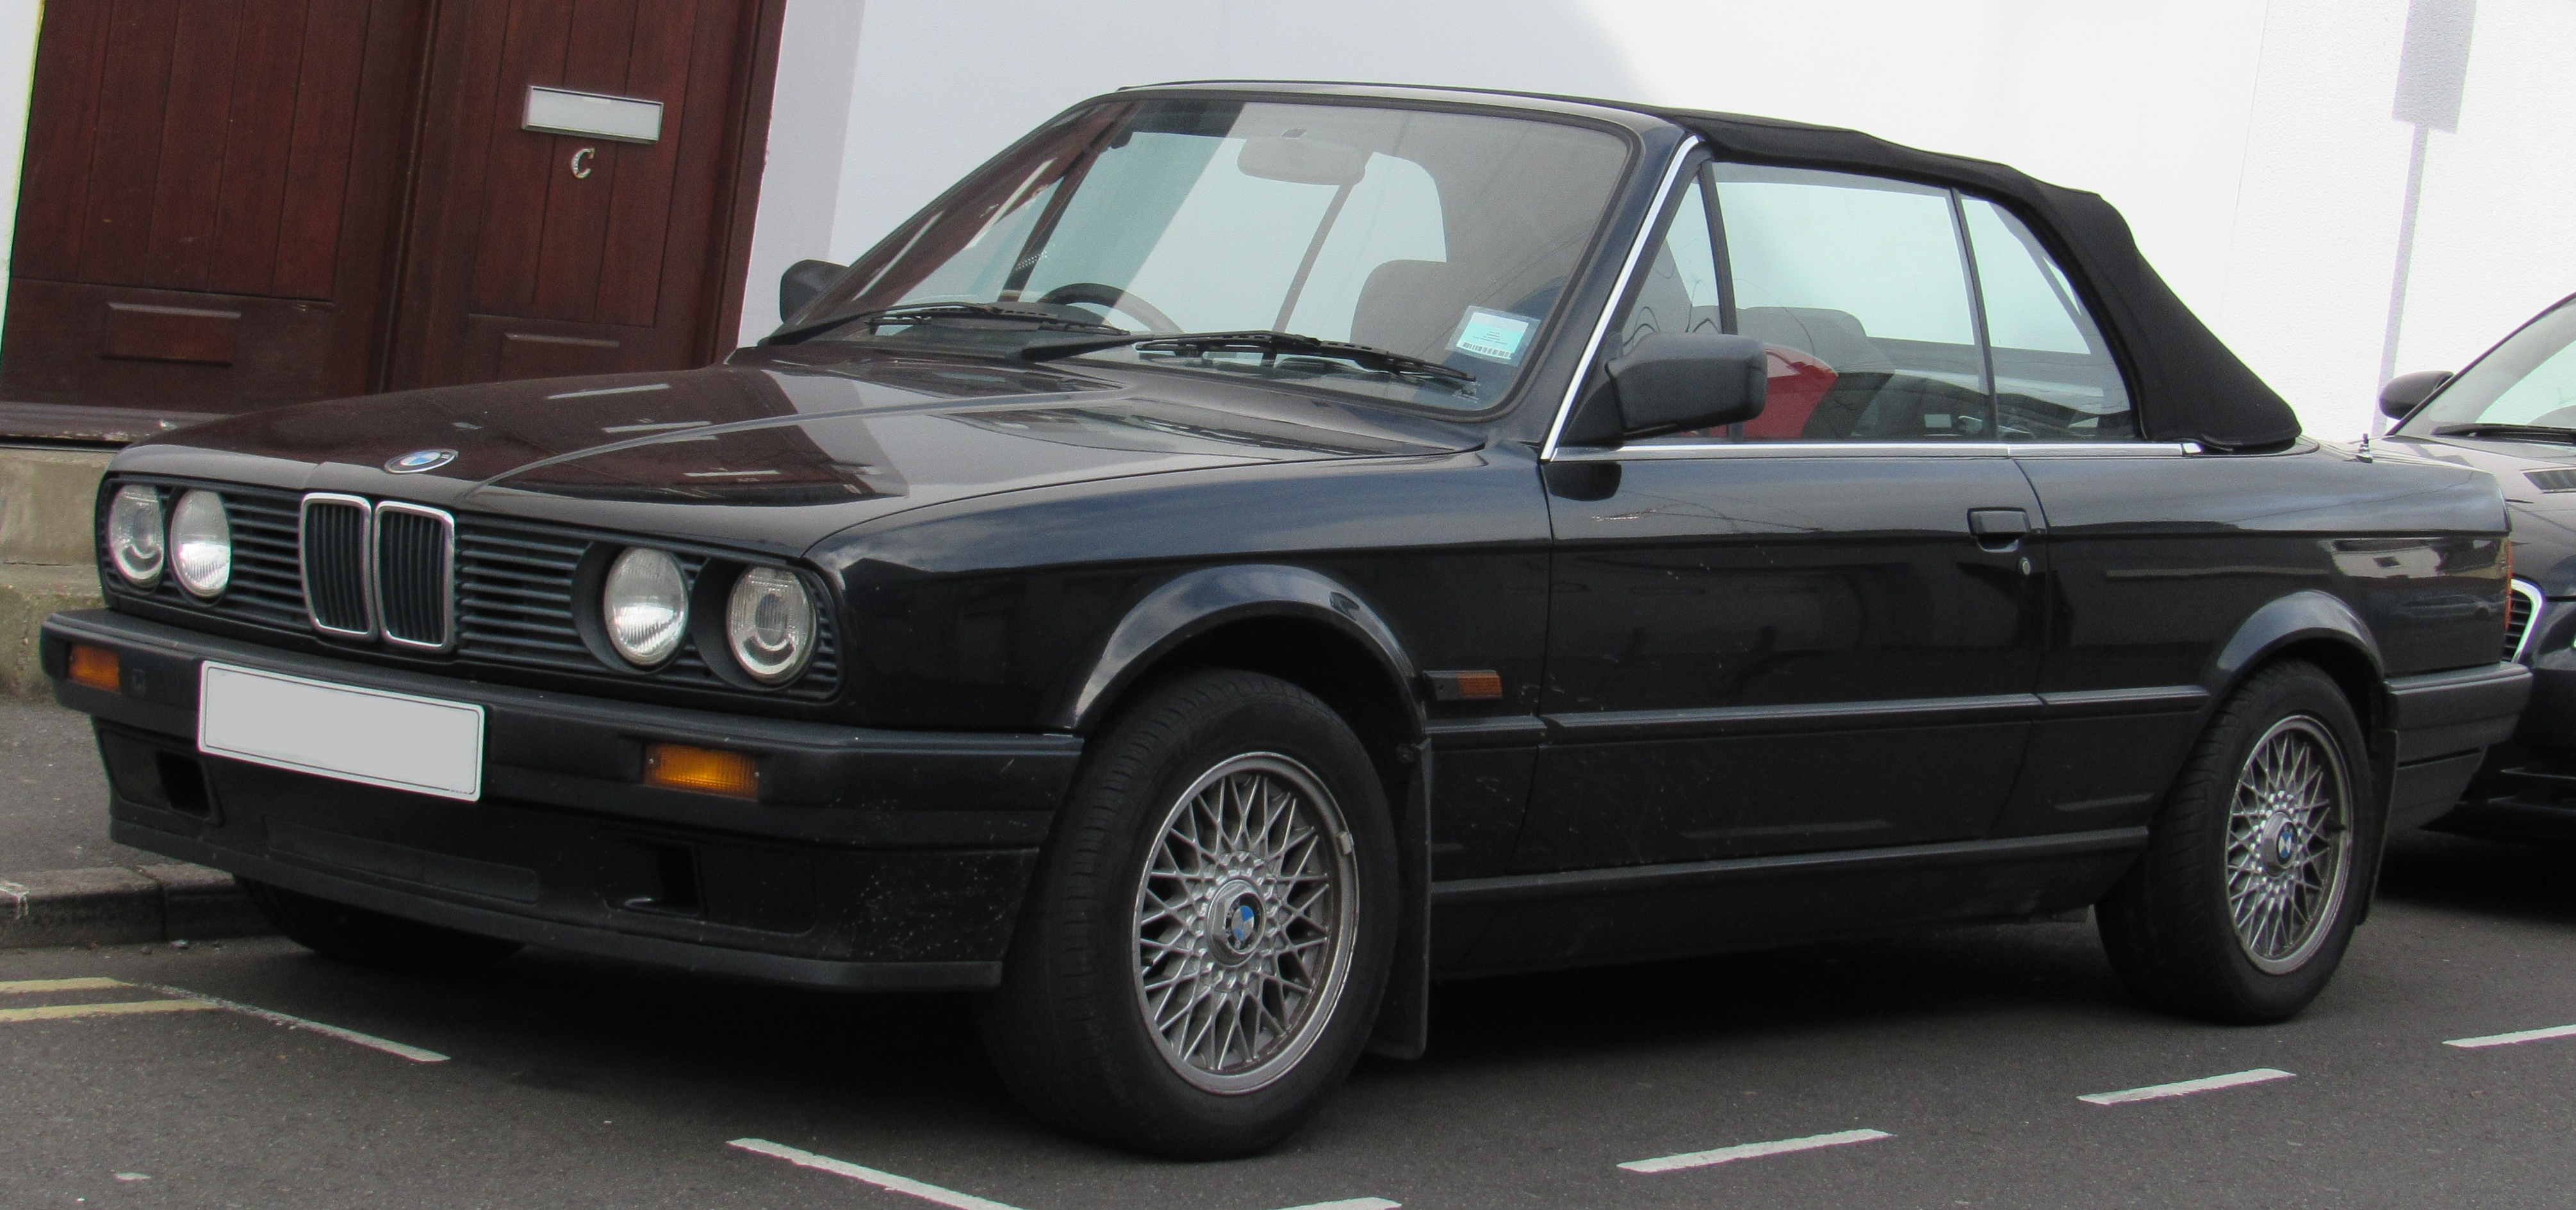 file 1992 bmw 318i convertible automatic 1 8 front jpg wikimedia commons https commons wikimedia org wiki file 1992 bmw 318i convertible automatic 1 8 front jpg